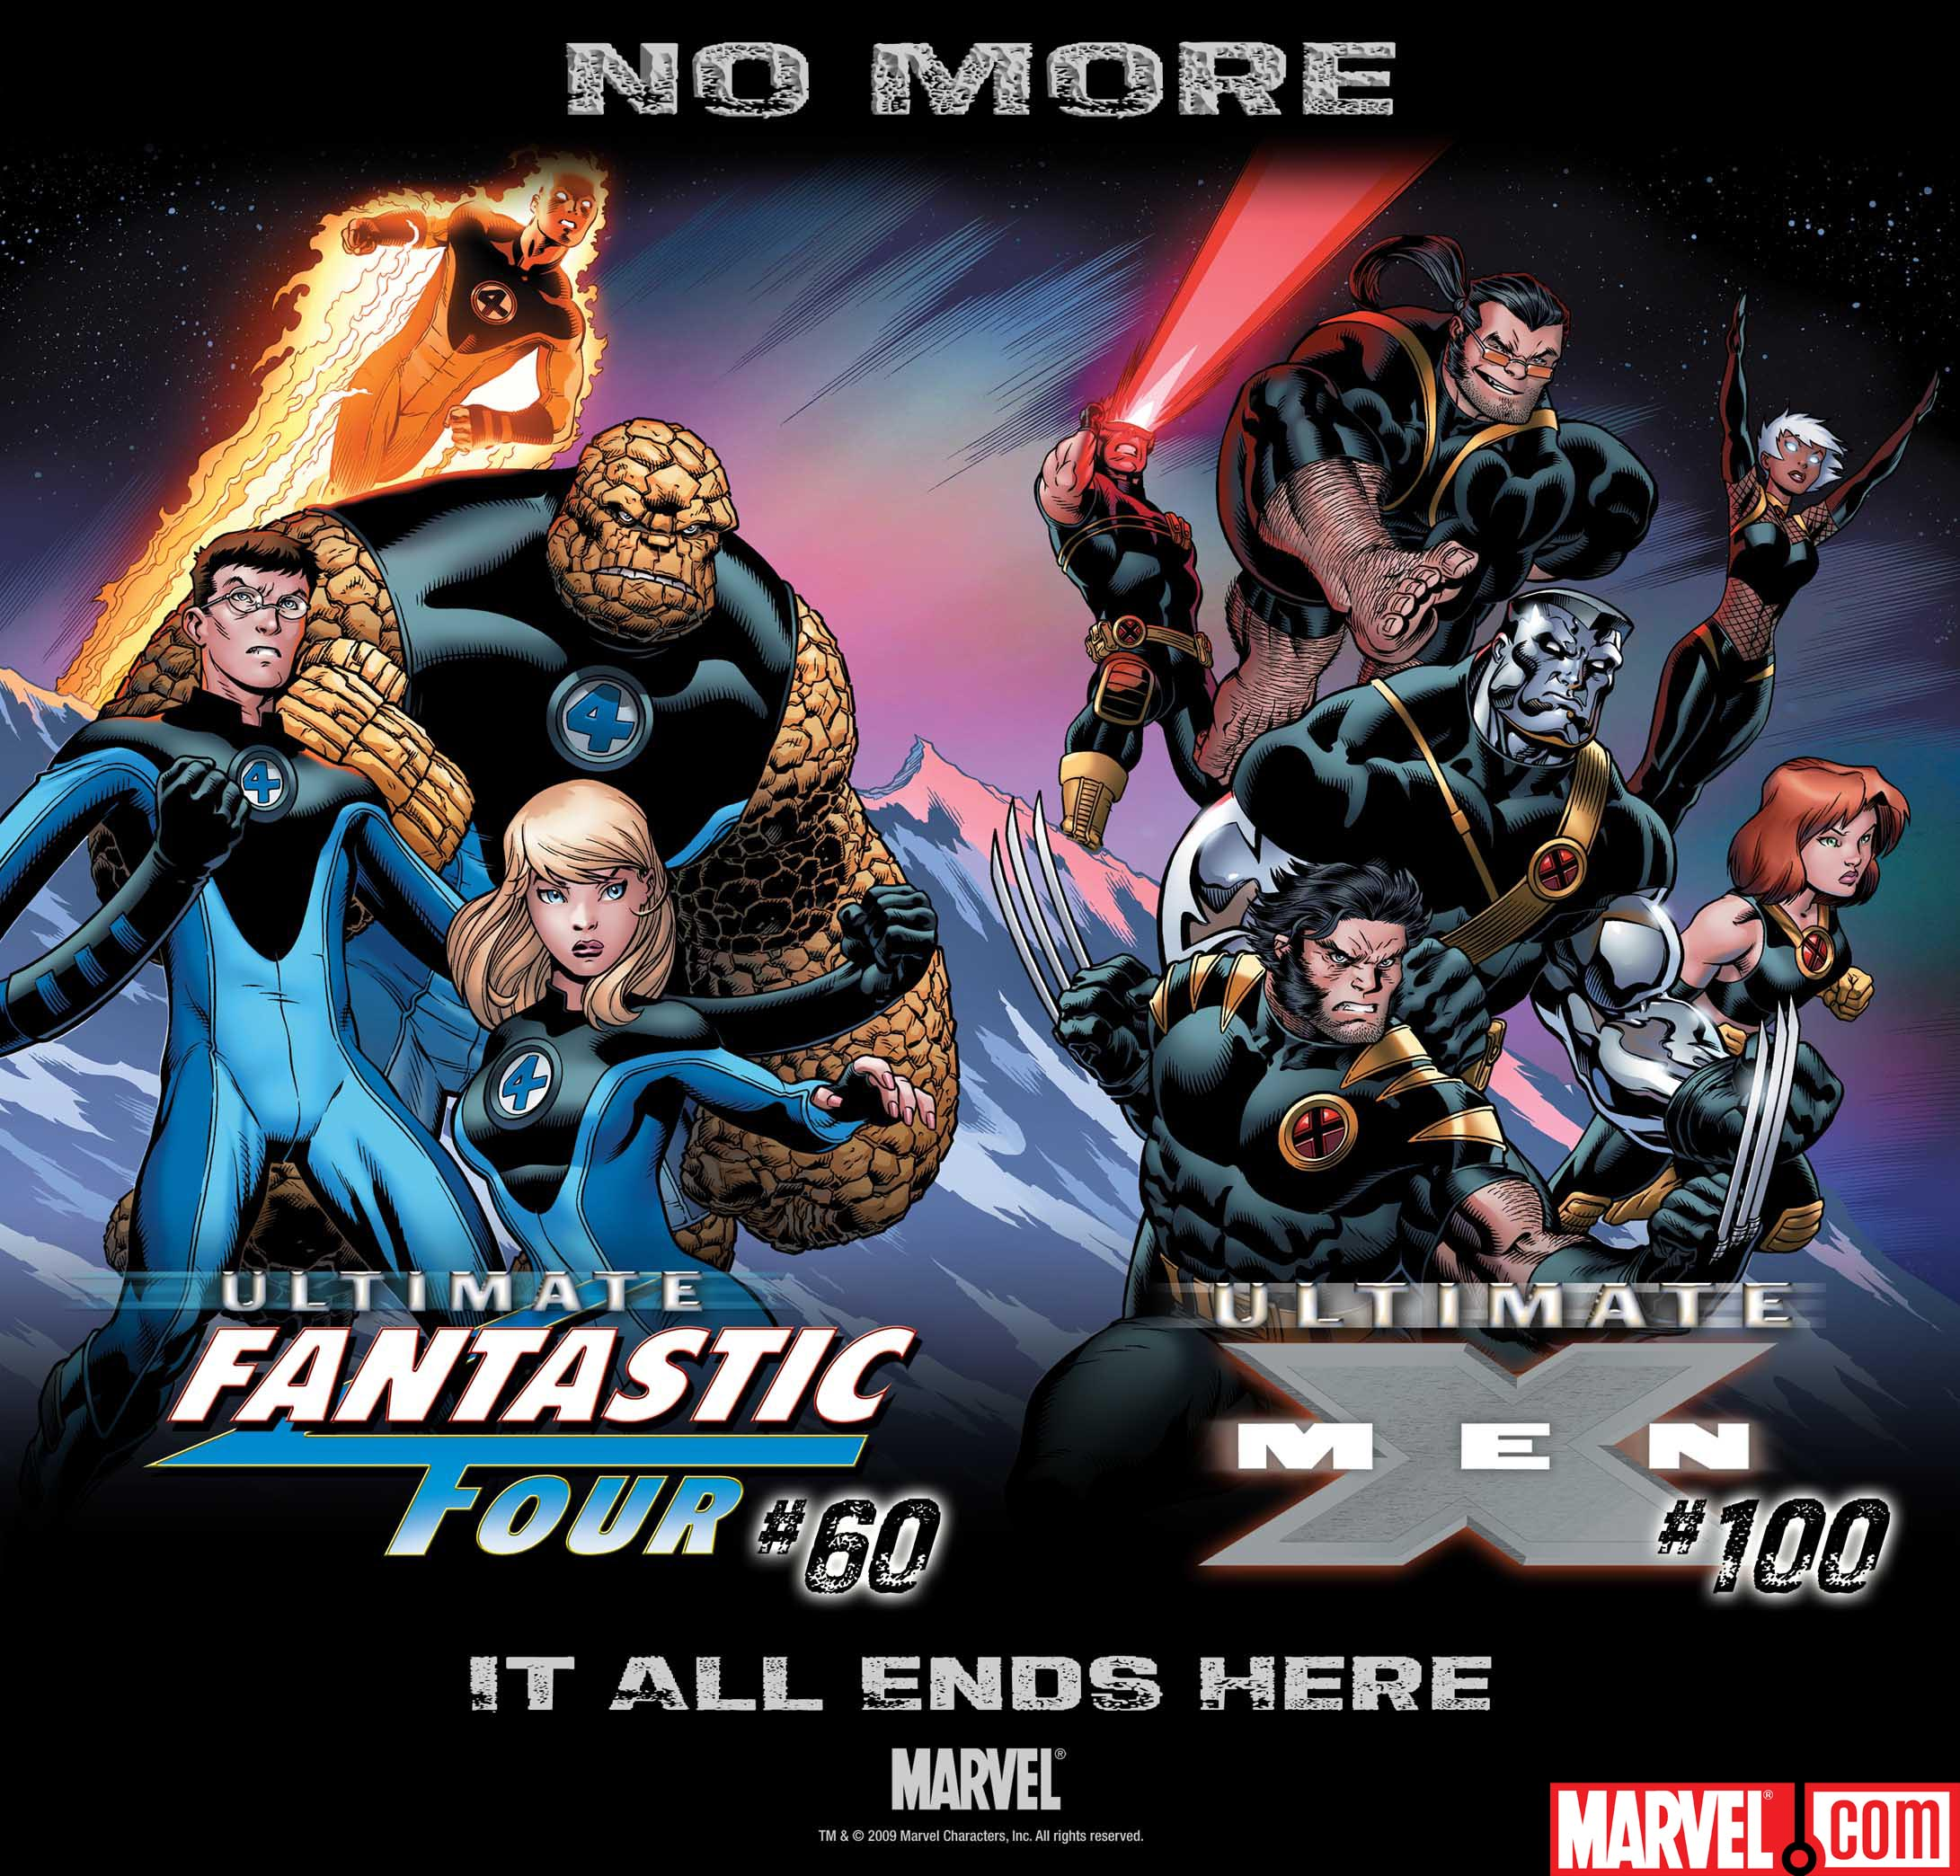 The Ultimate X Men And Ultimate Fantastic Four Are No More